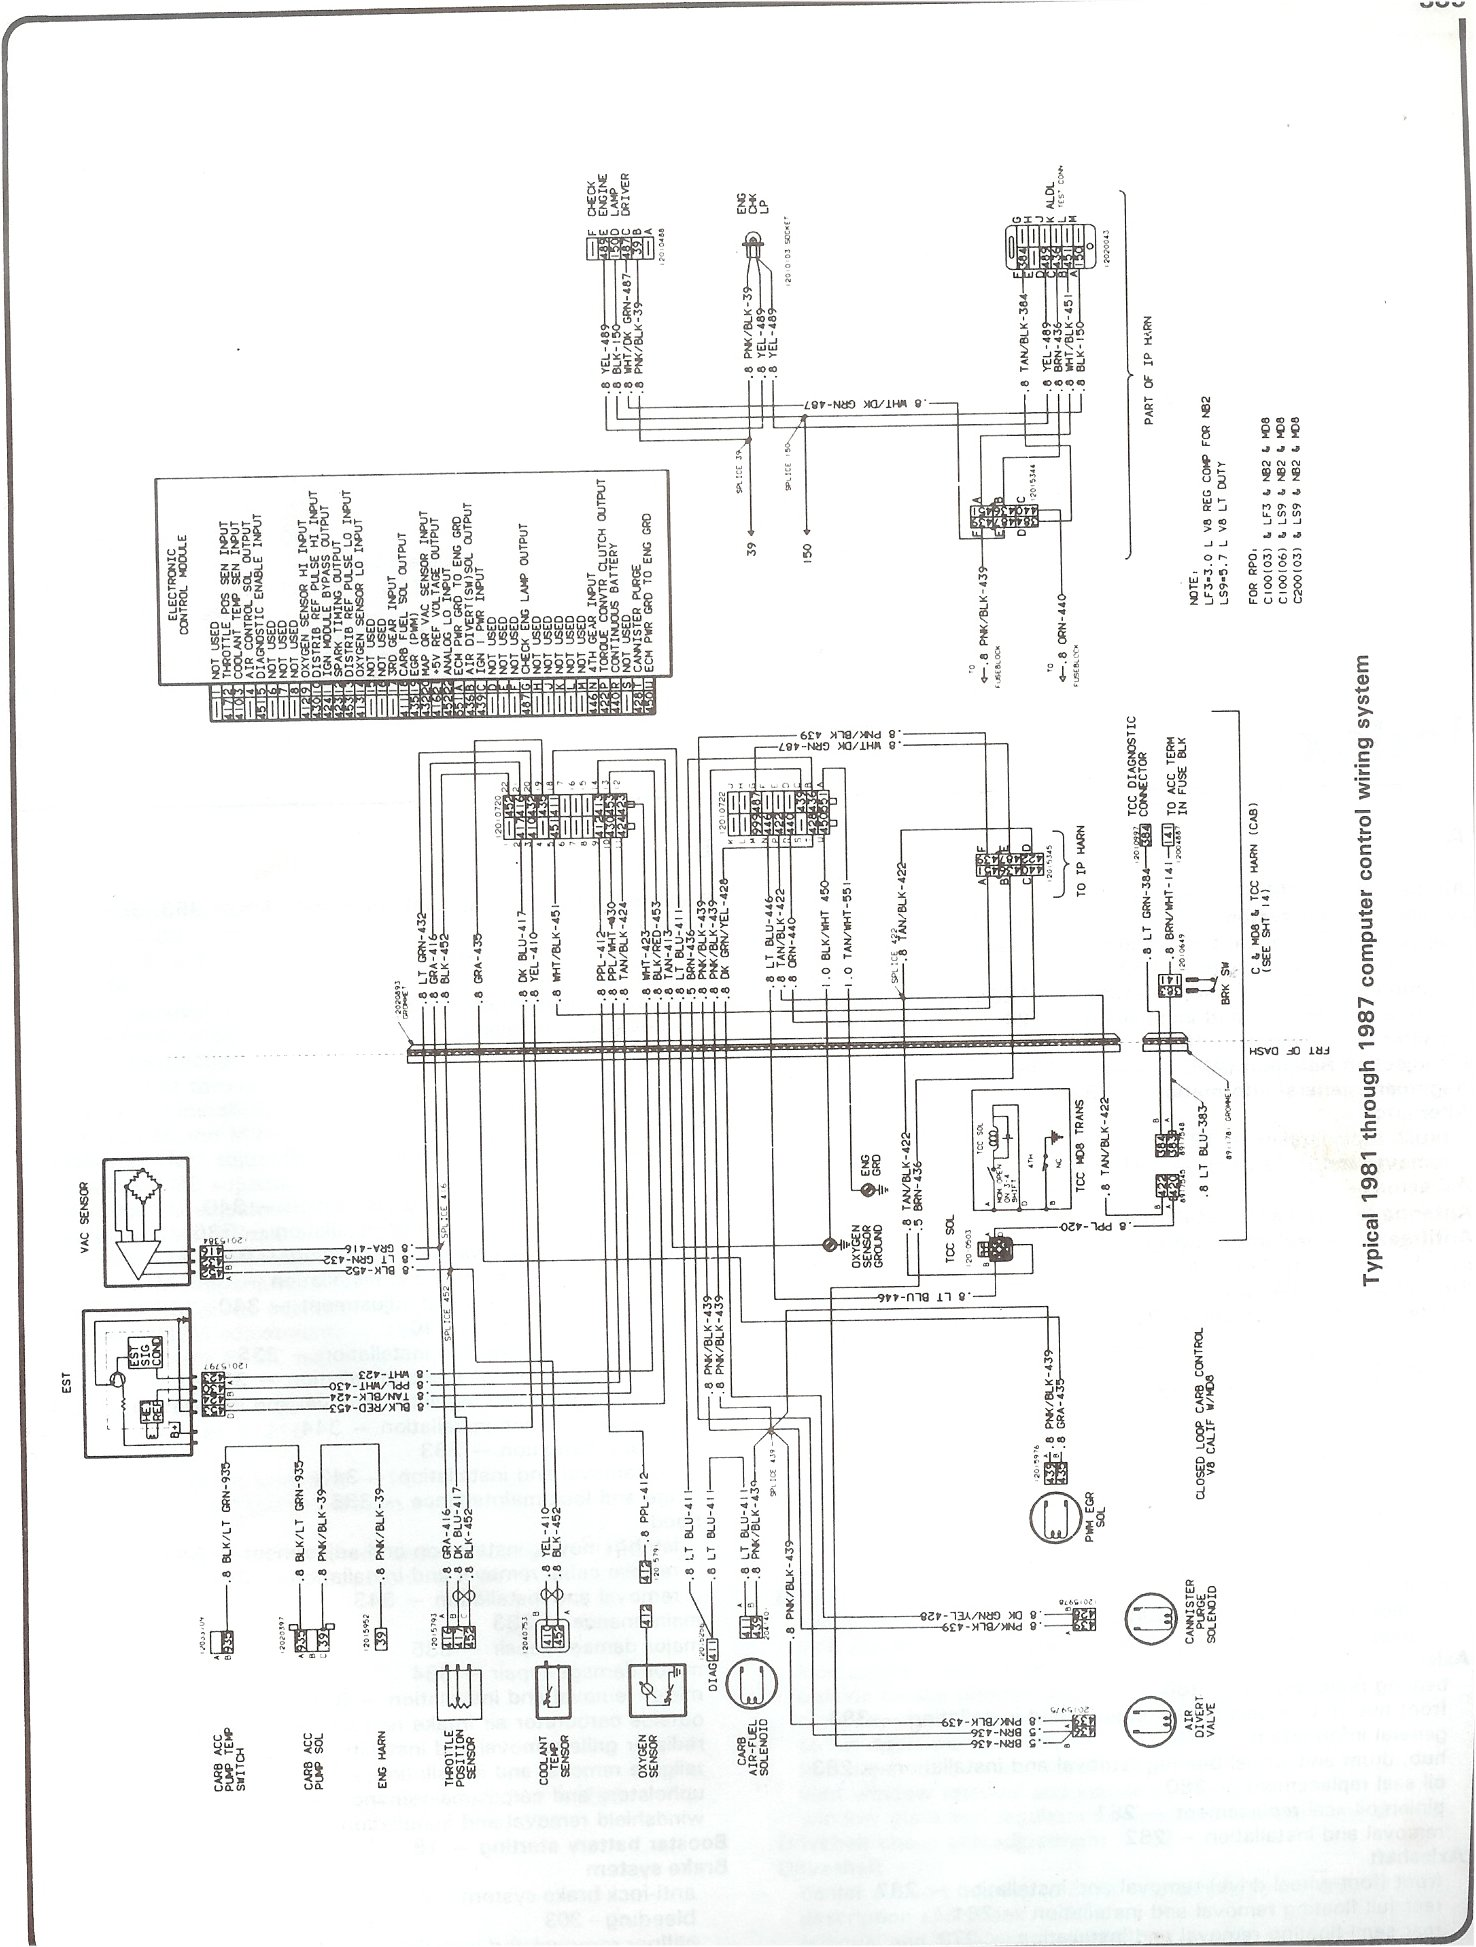 81 87_computer_control_wiring complete 73 87 wiring diagrams 1976 chevy truck wire harness at webbmarketing.co